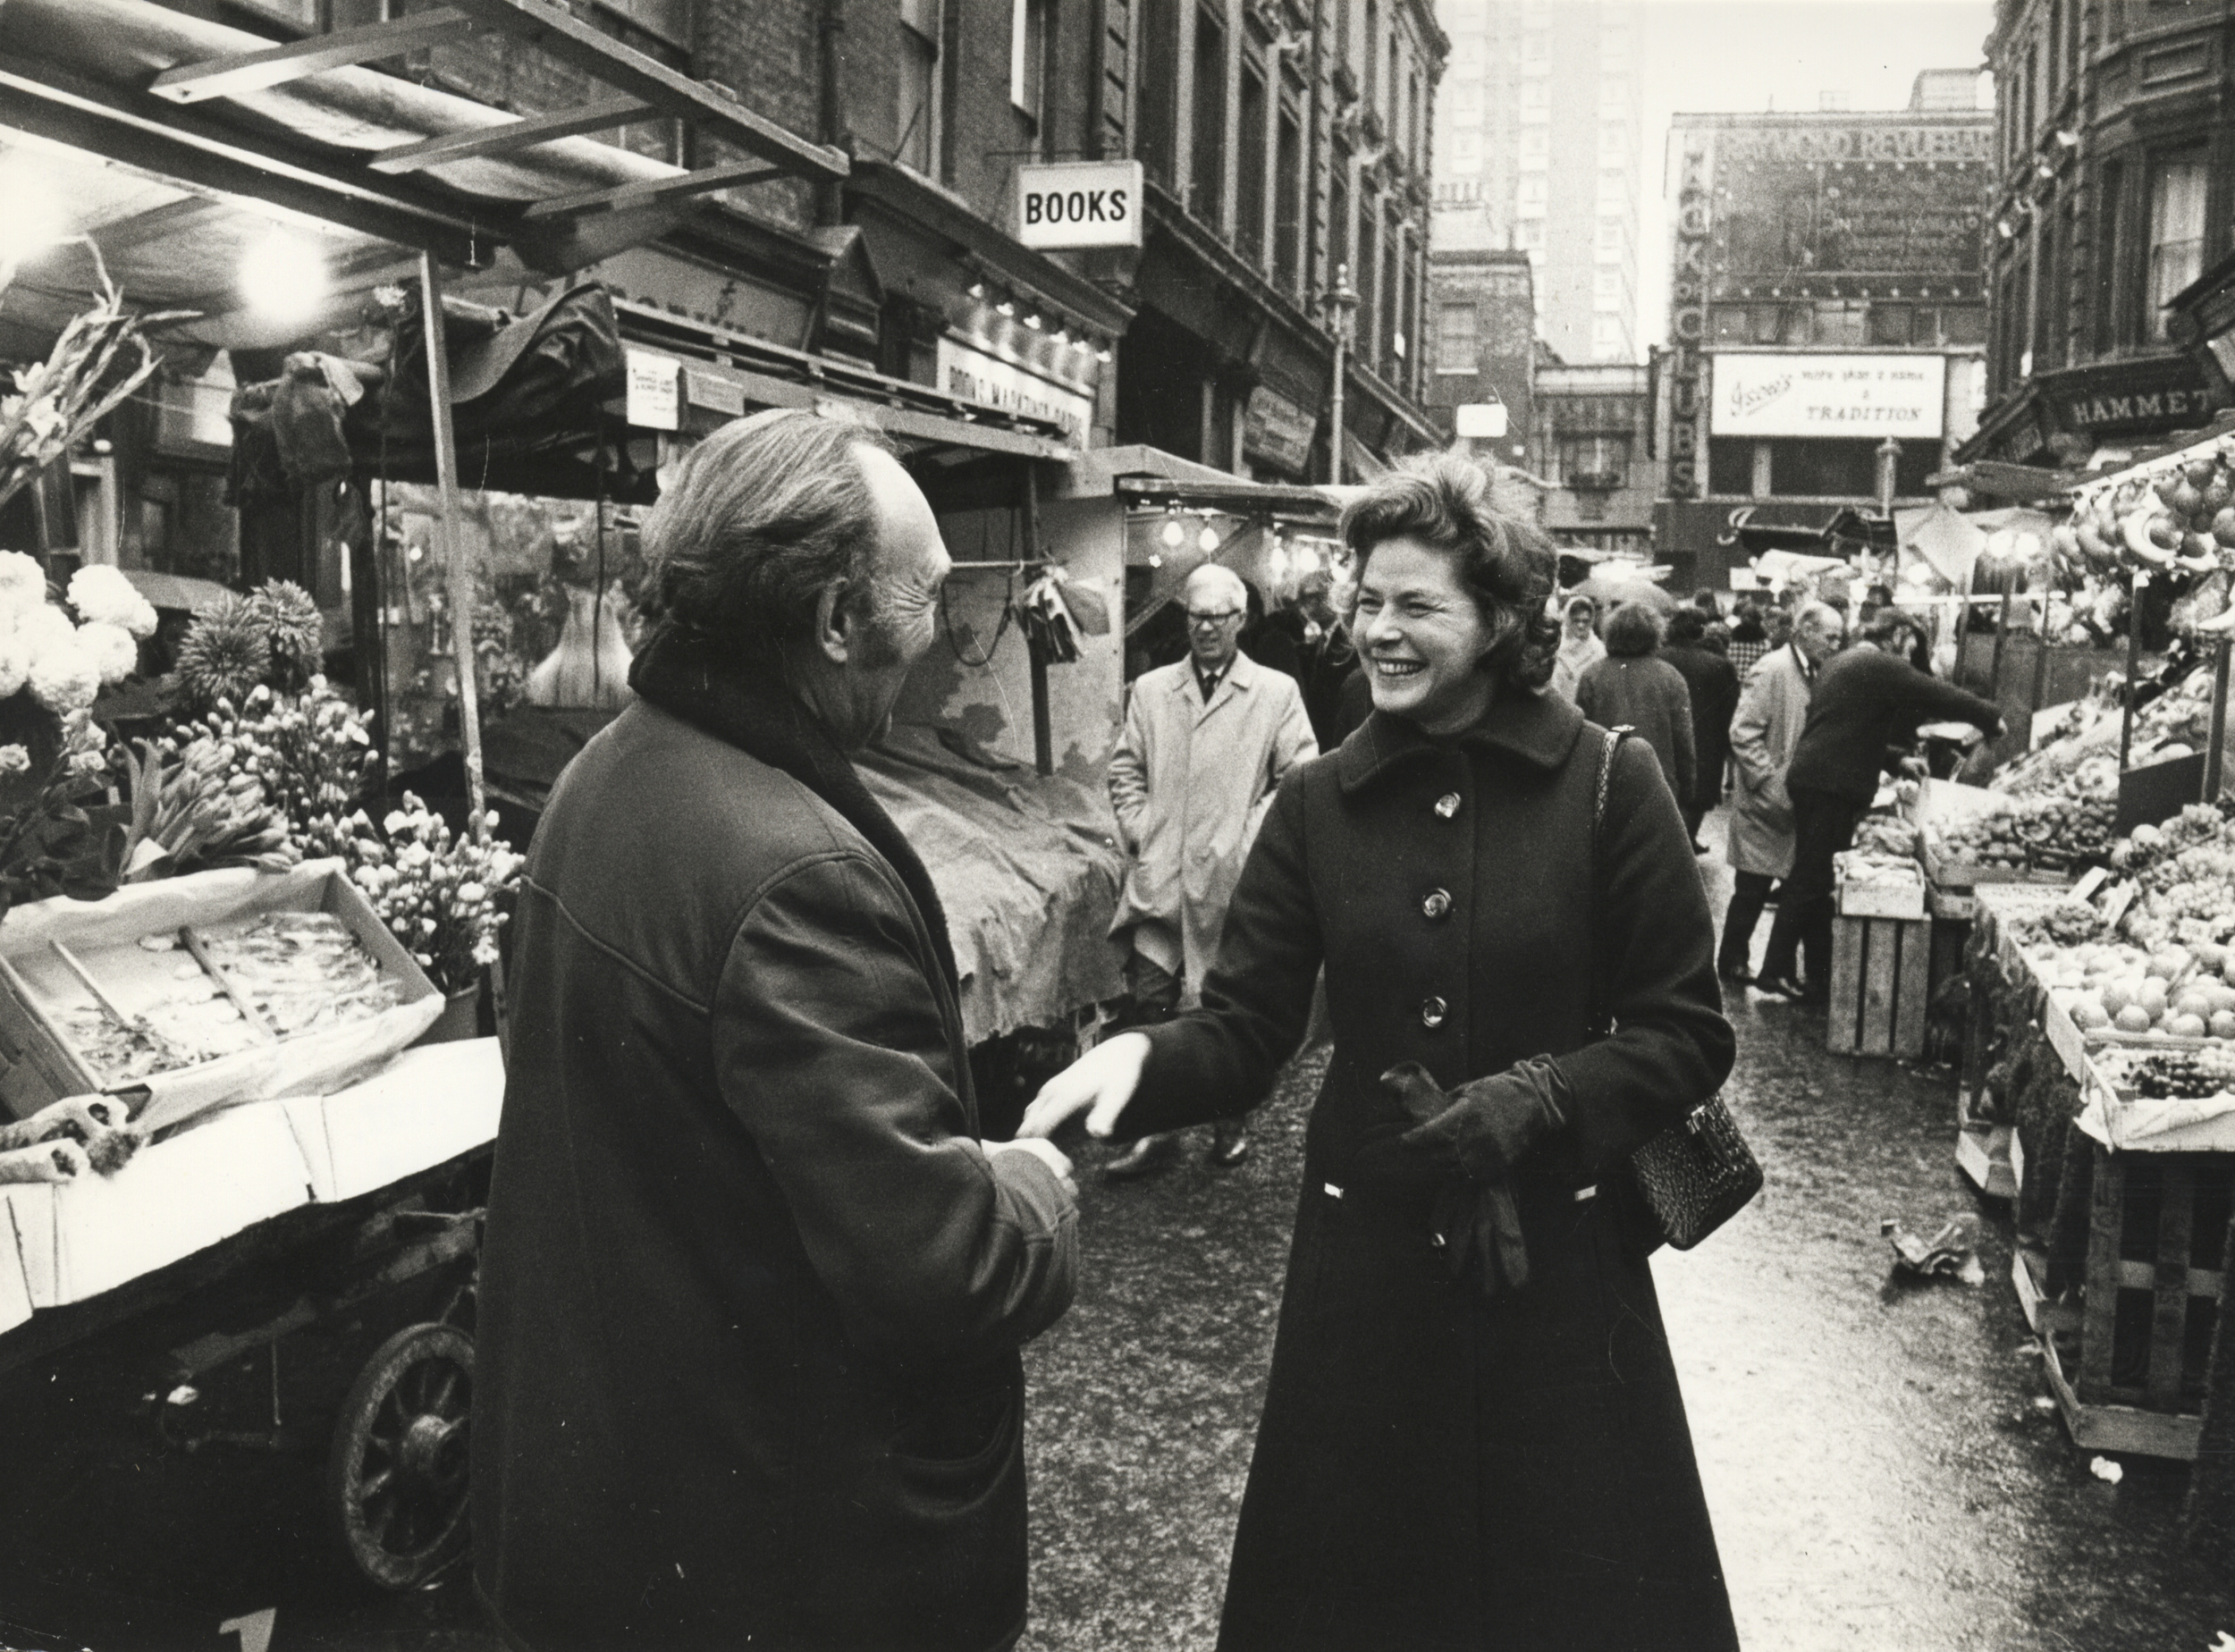 Spotted in Soho (Berwick Street market). Ingrid Bergman spent most of her later life living in London.